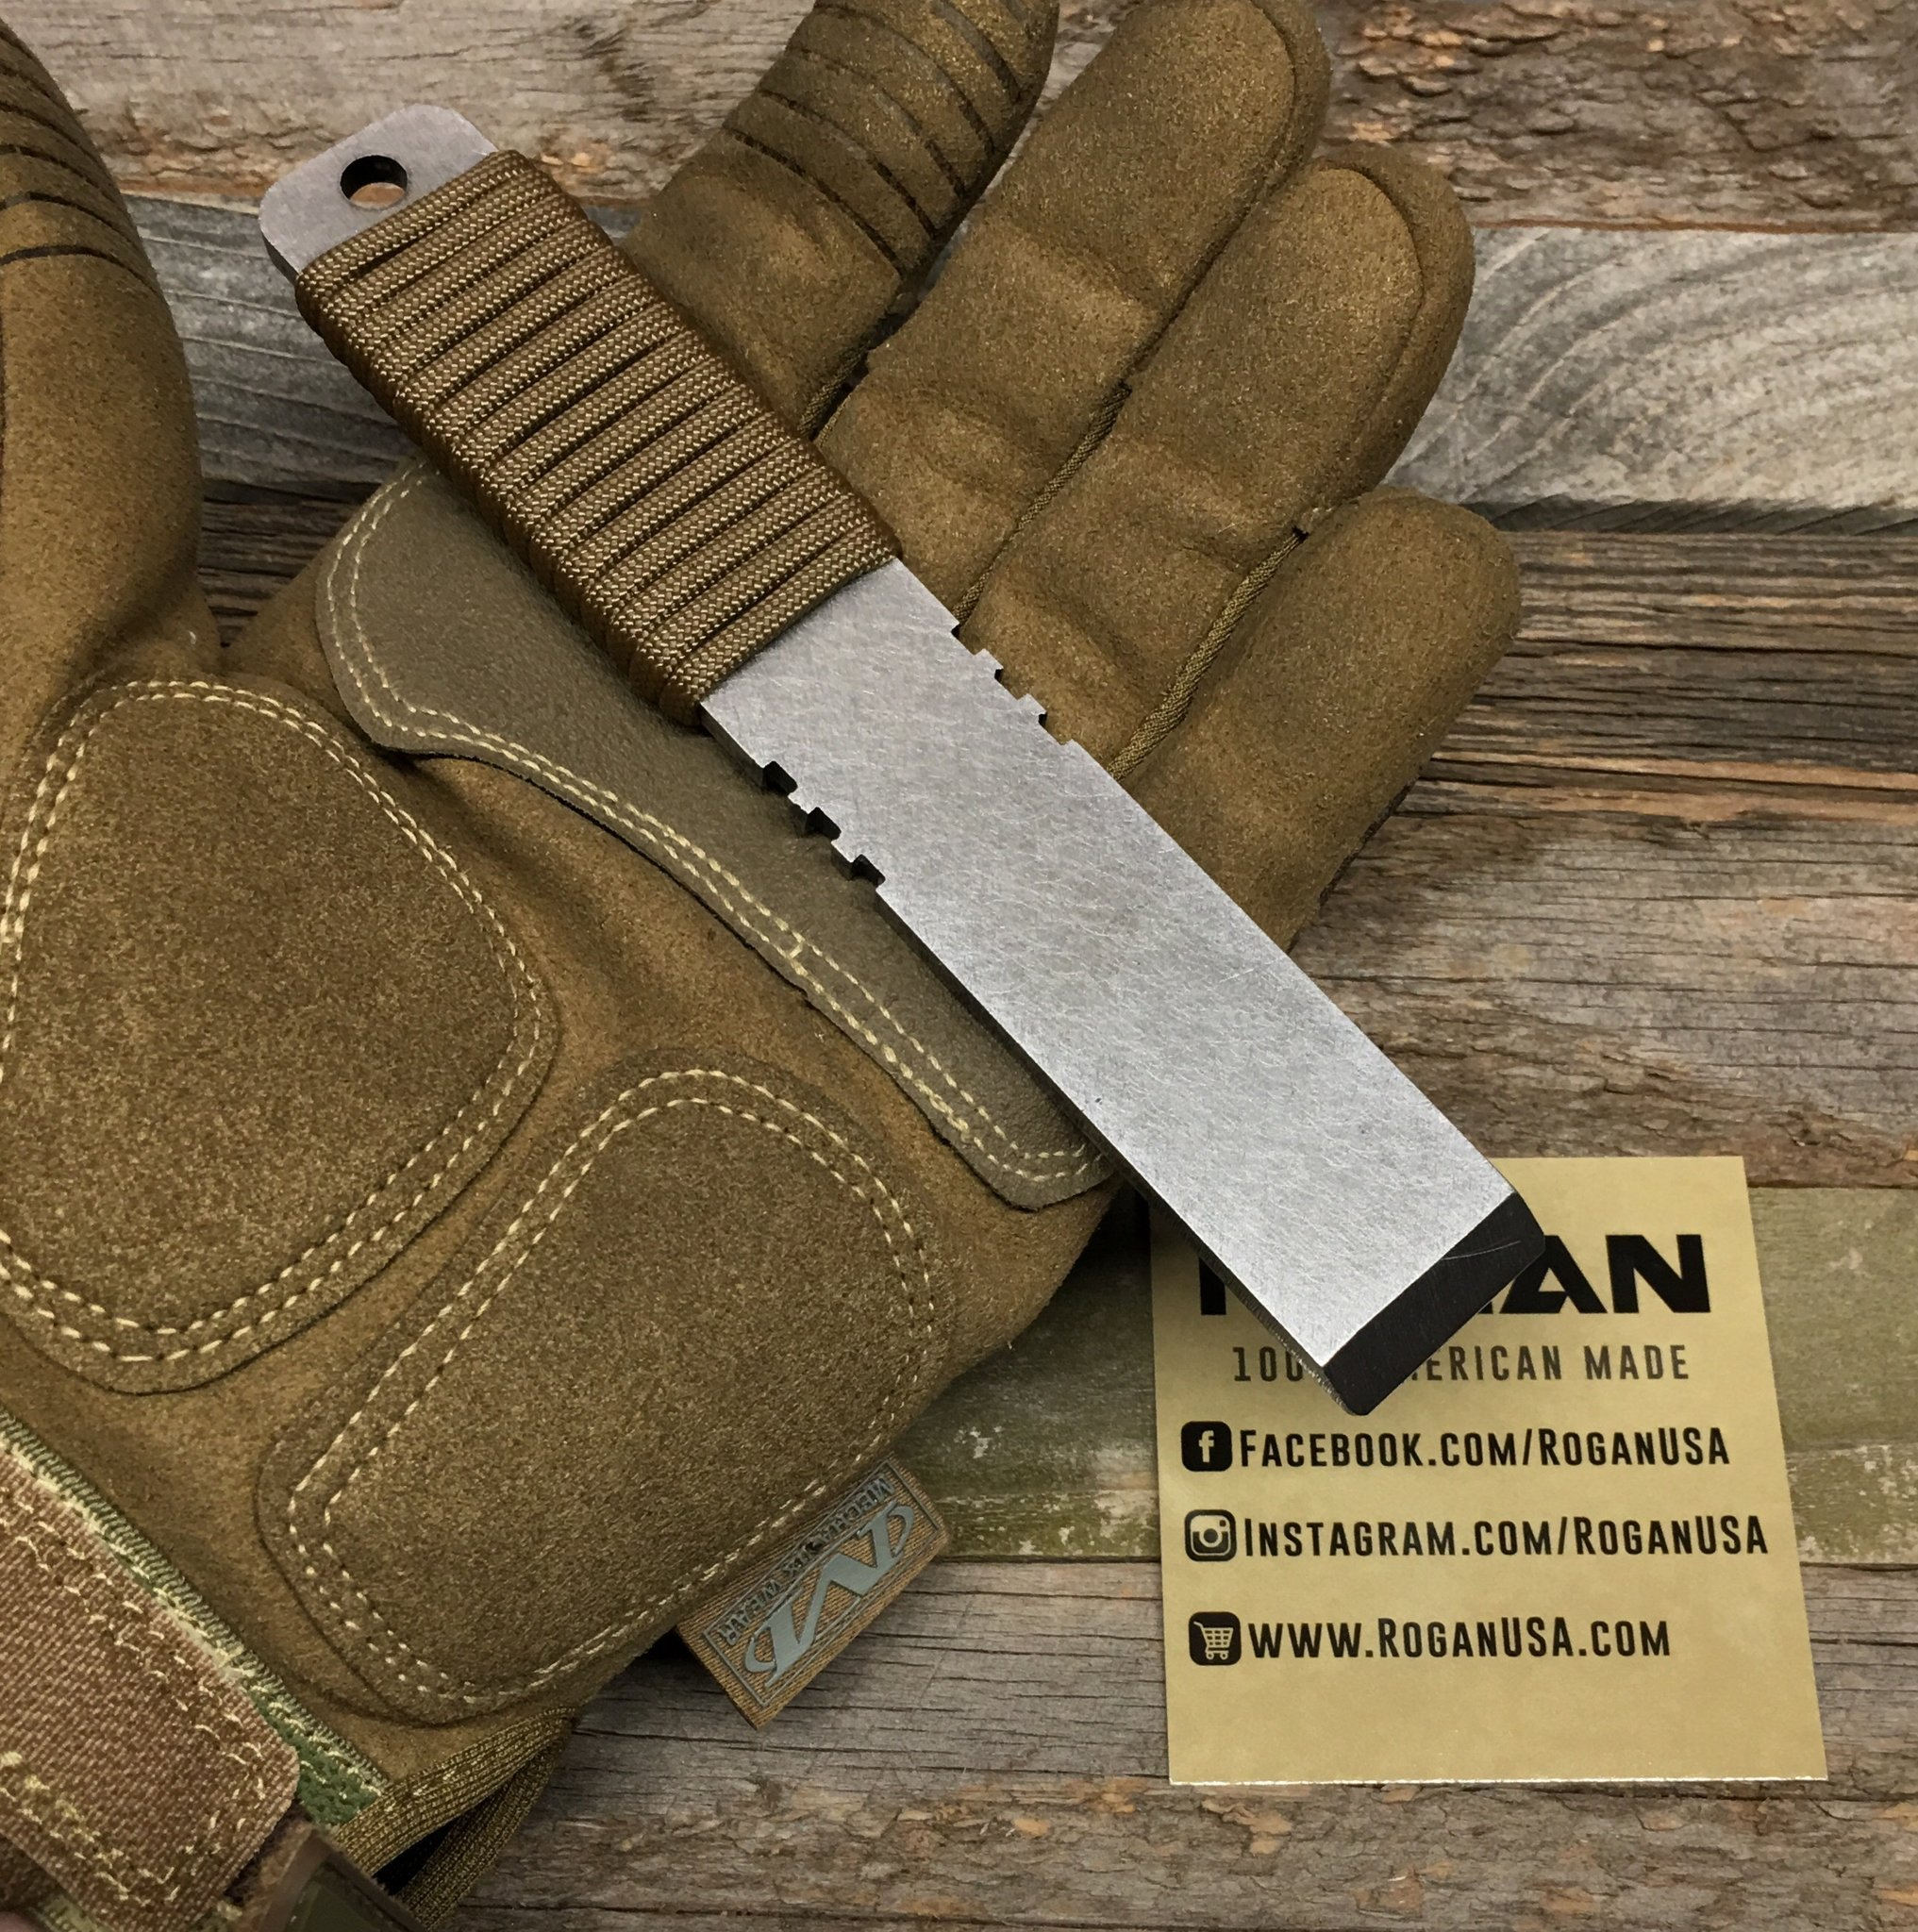 The Rogan Pack Tool is a compact sized bar tool that was designed to perform like a full size model but with a size that is more suited for everyday carry. The Pack Tool is all about mobility. Clip it on your backpack or belt loop with a carabiner, slide it into a single channel of molle webbing or simply throw it in your pocket and always be prepared. The Pack Tool makes a great companion to any folding knife or multi tool, save your knife for cutting fine things and let the Pack Tool handle the rest! The Pack Tool is a larger version of our Pocket Tools and combine the handle wrap of the regular pocket tool with the finger notches of the Pocket Tool Slim.